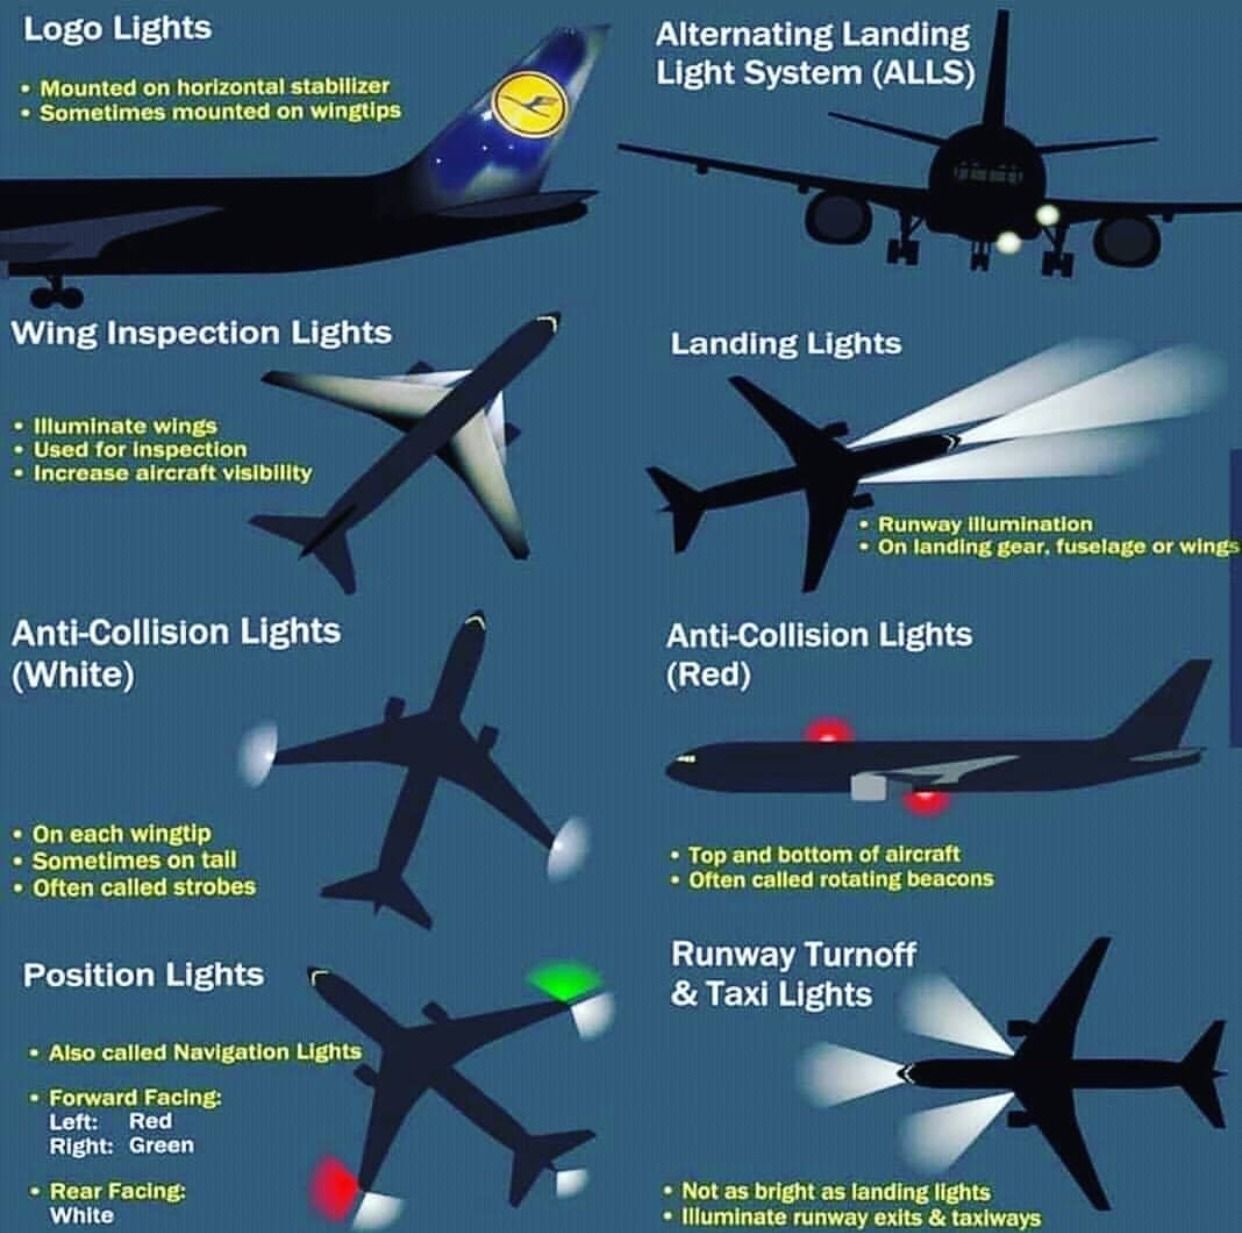 Long Island Airpower | Aviation education, Aviation training, Pilots quotes  aviation